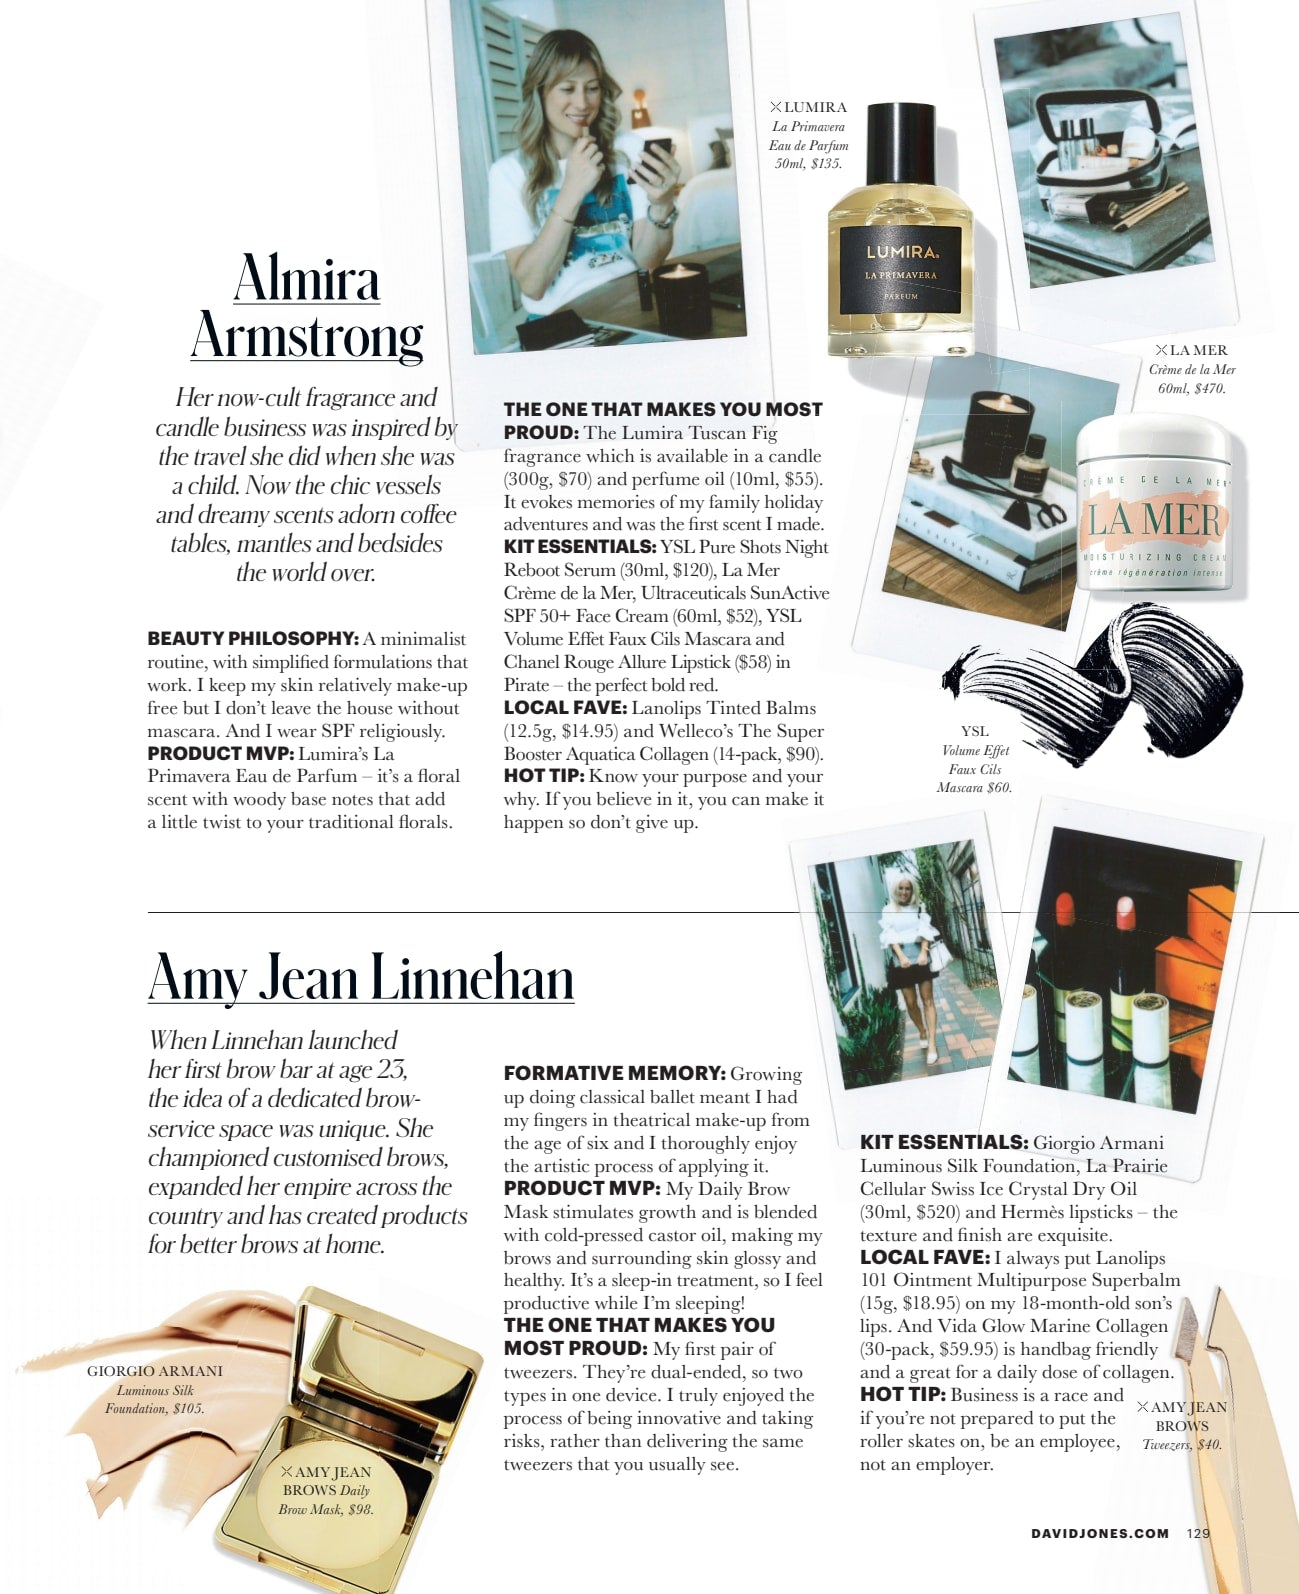 JONES Magazine interview with Almira Armstrong for International Women's Day